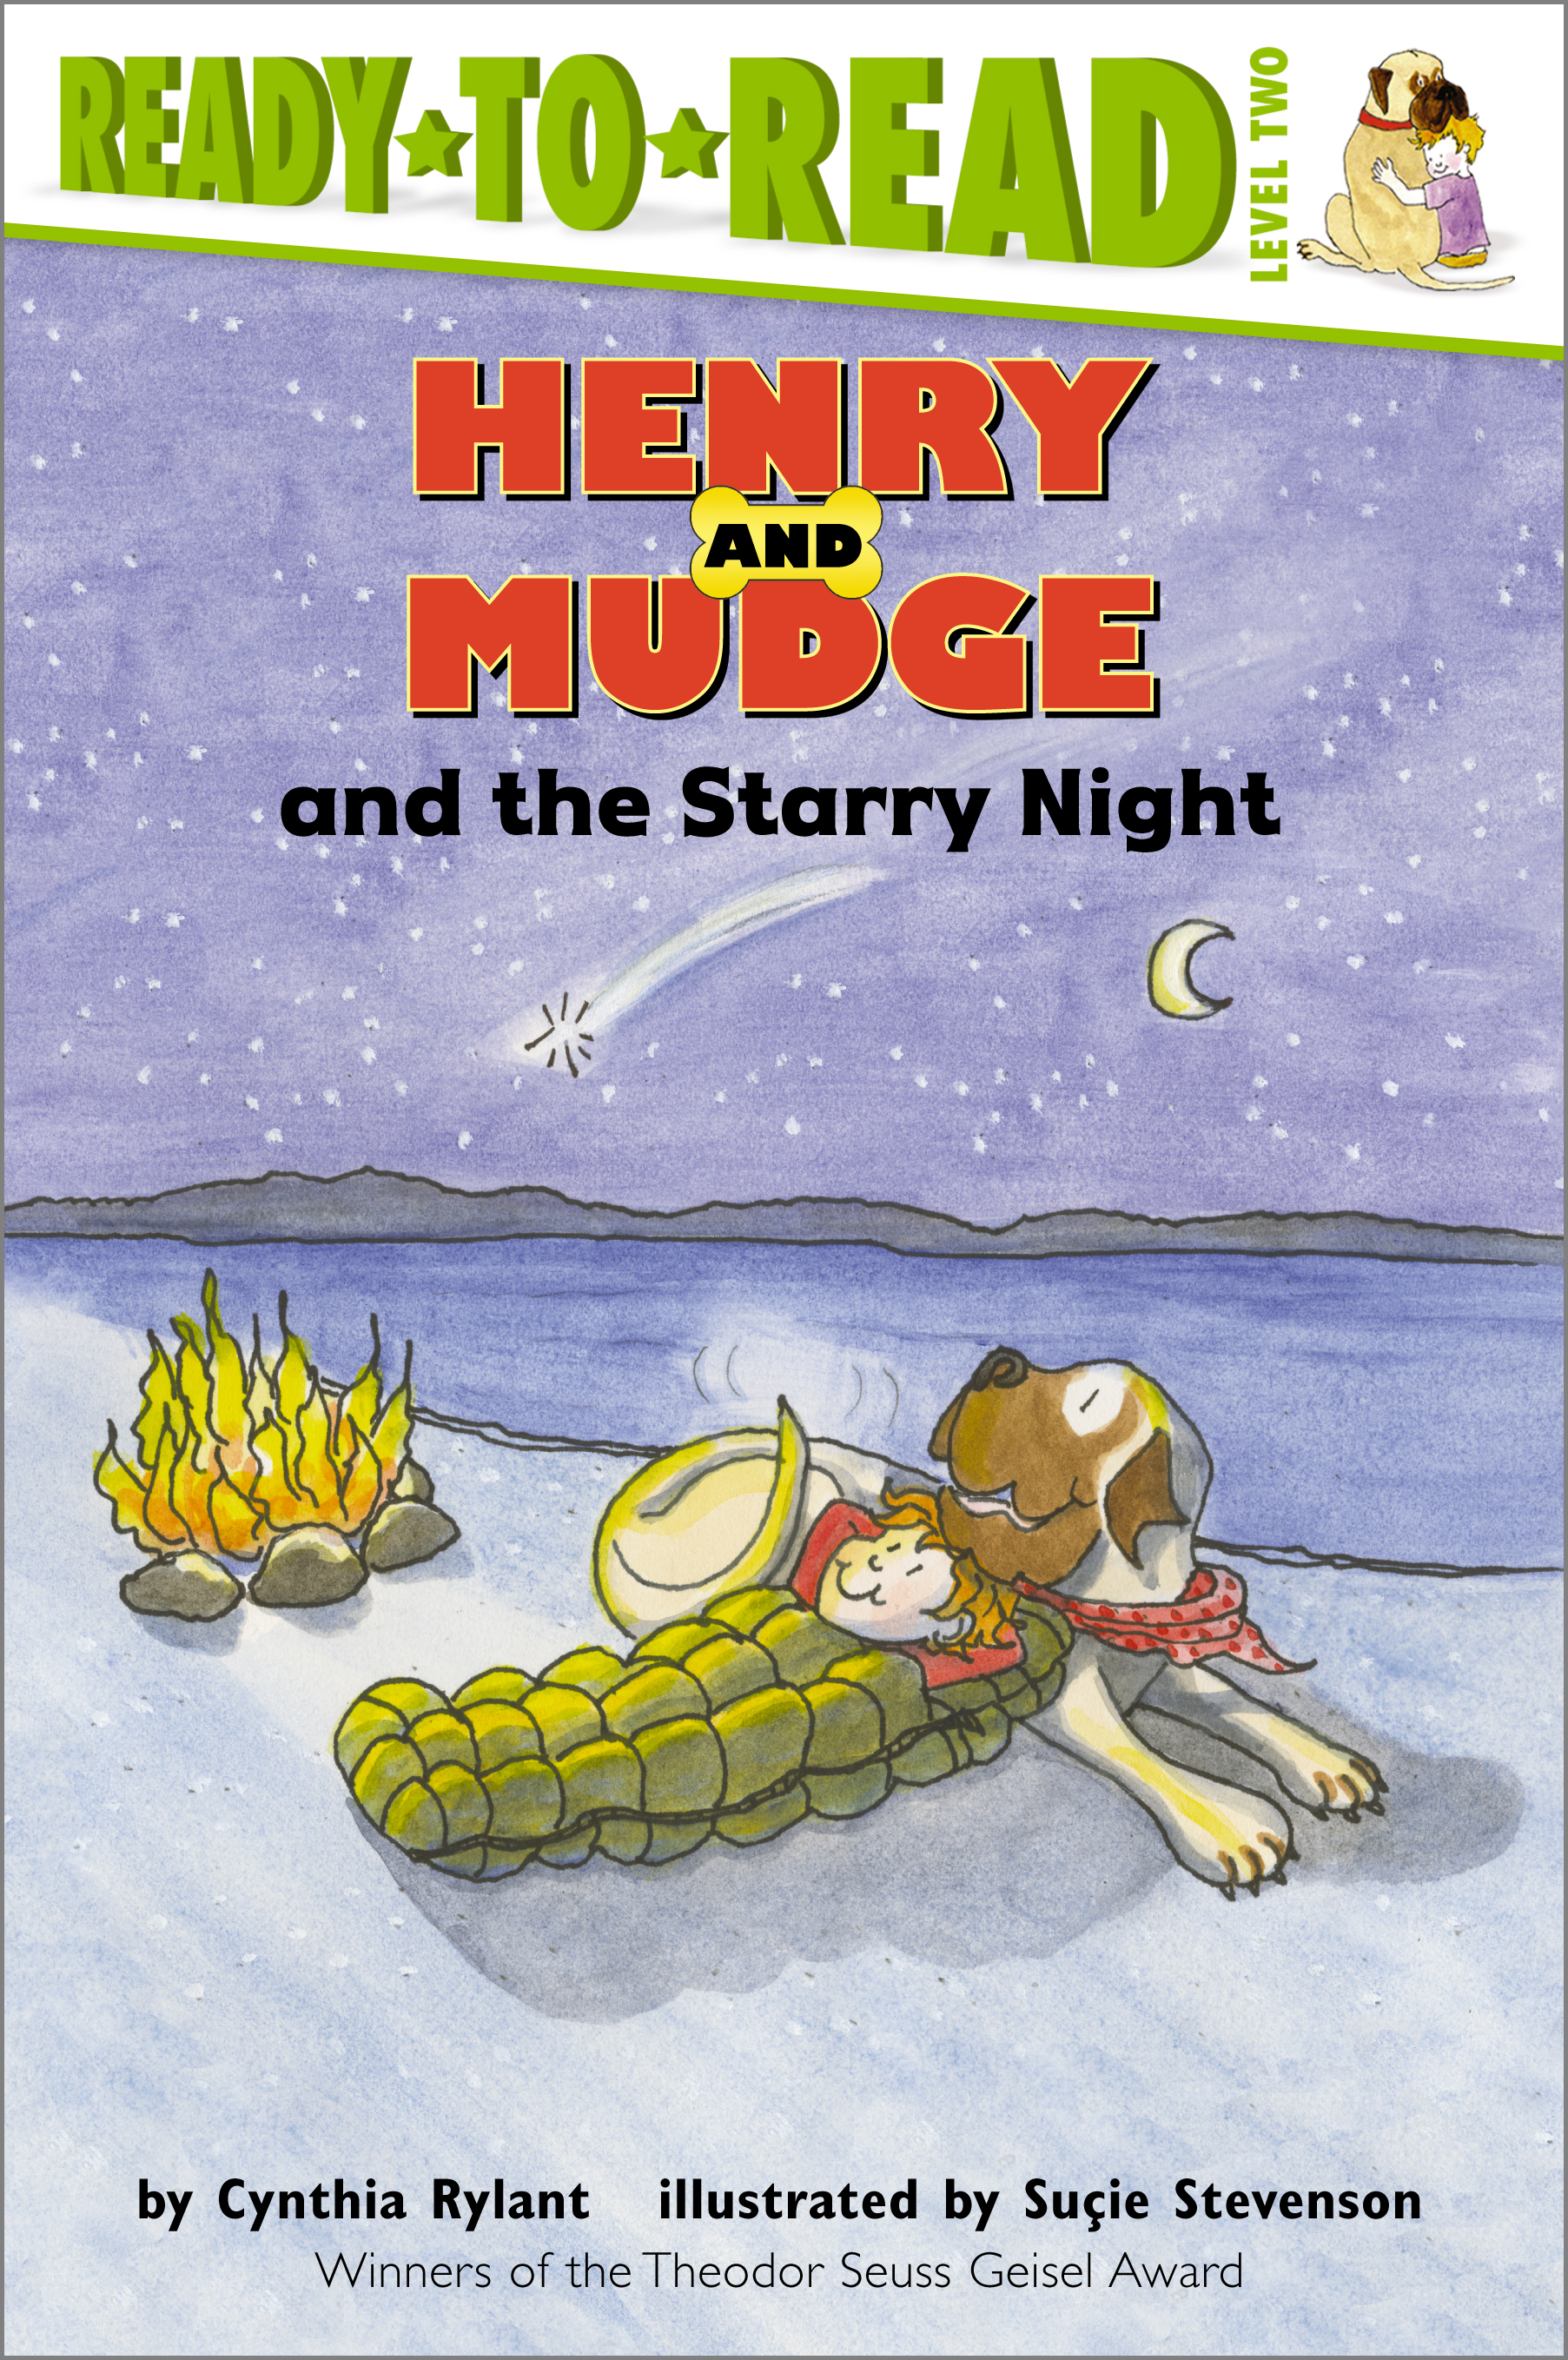 Worksheets Henry And Mudge And The Starry Night Worksheets cynthia rylant official publisher page simon schuster canada book cover image jpg henry and mudge the starry night